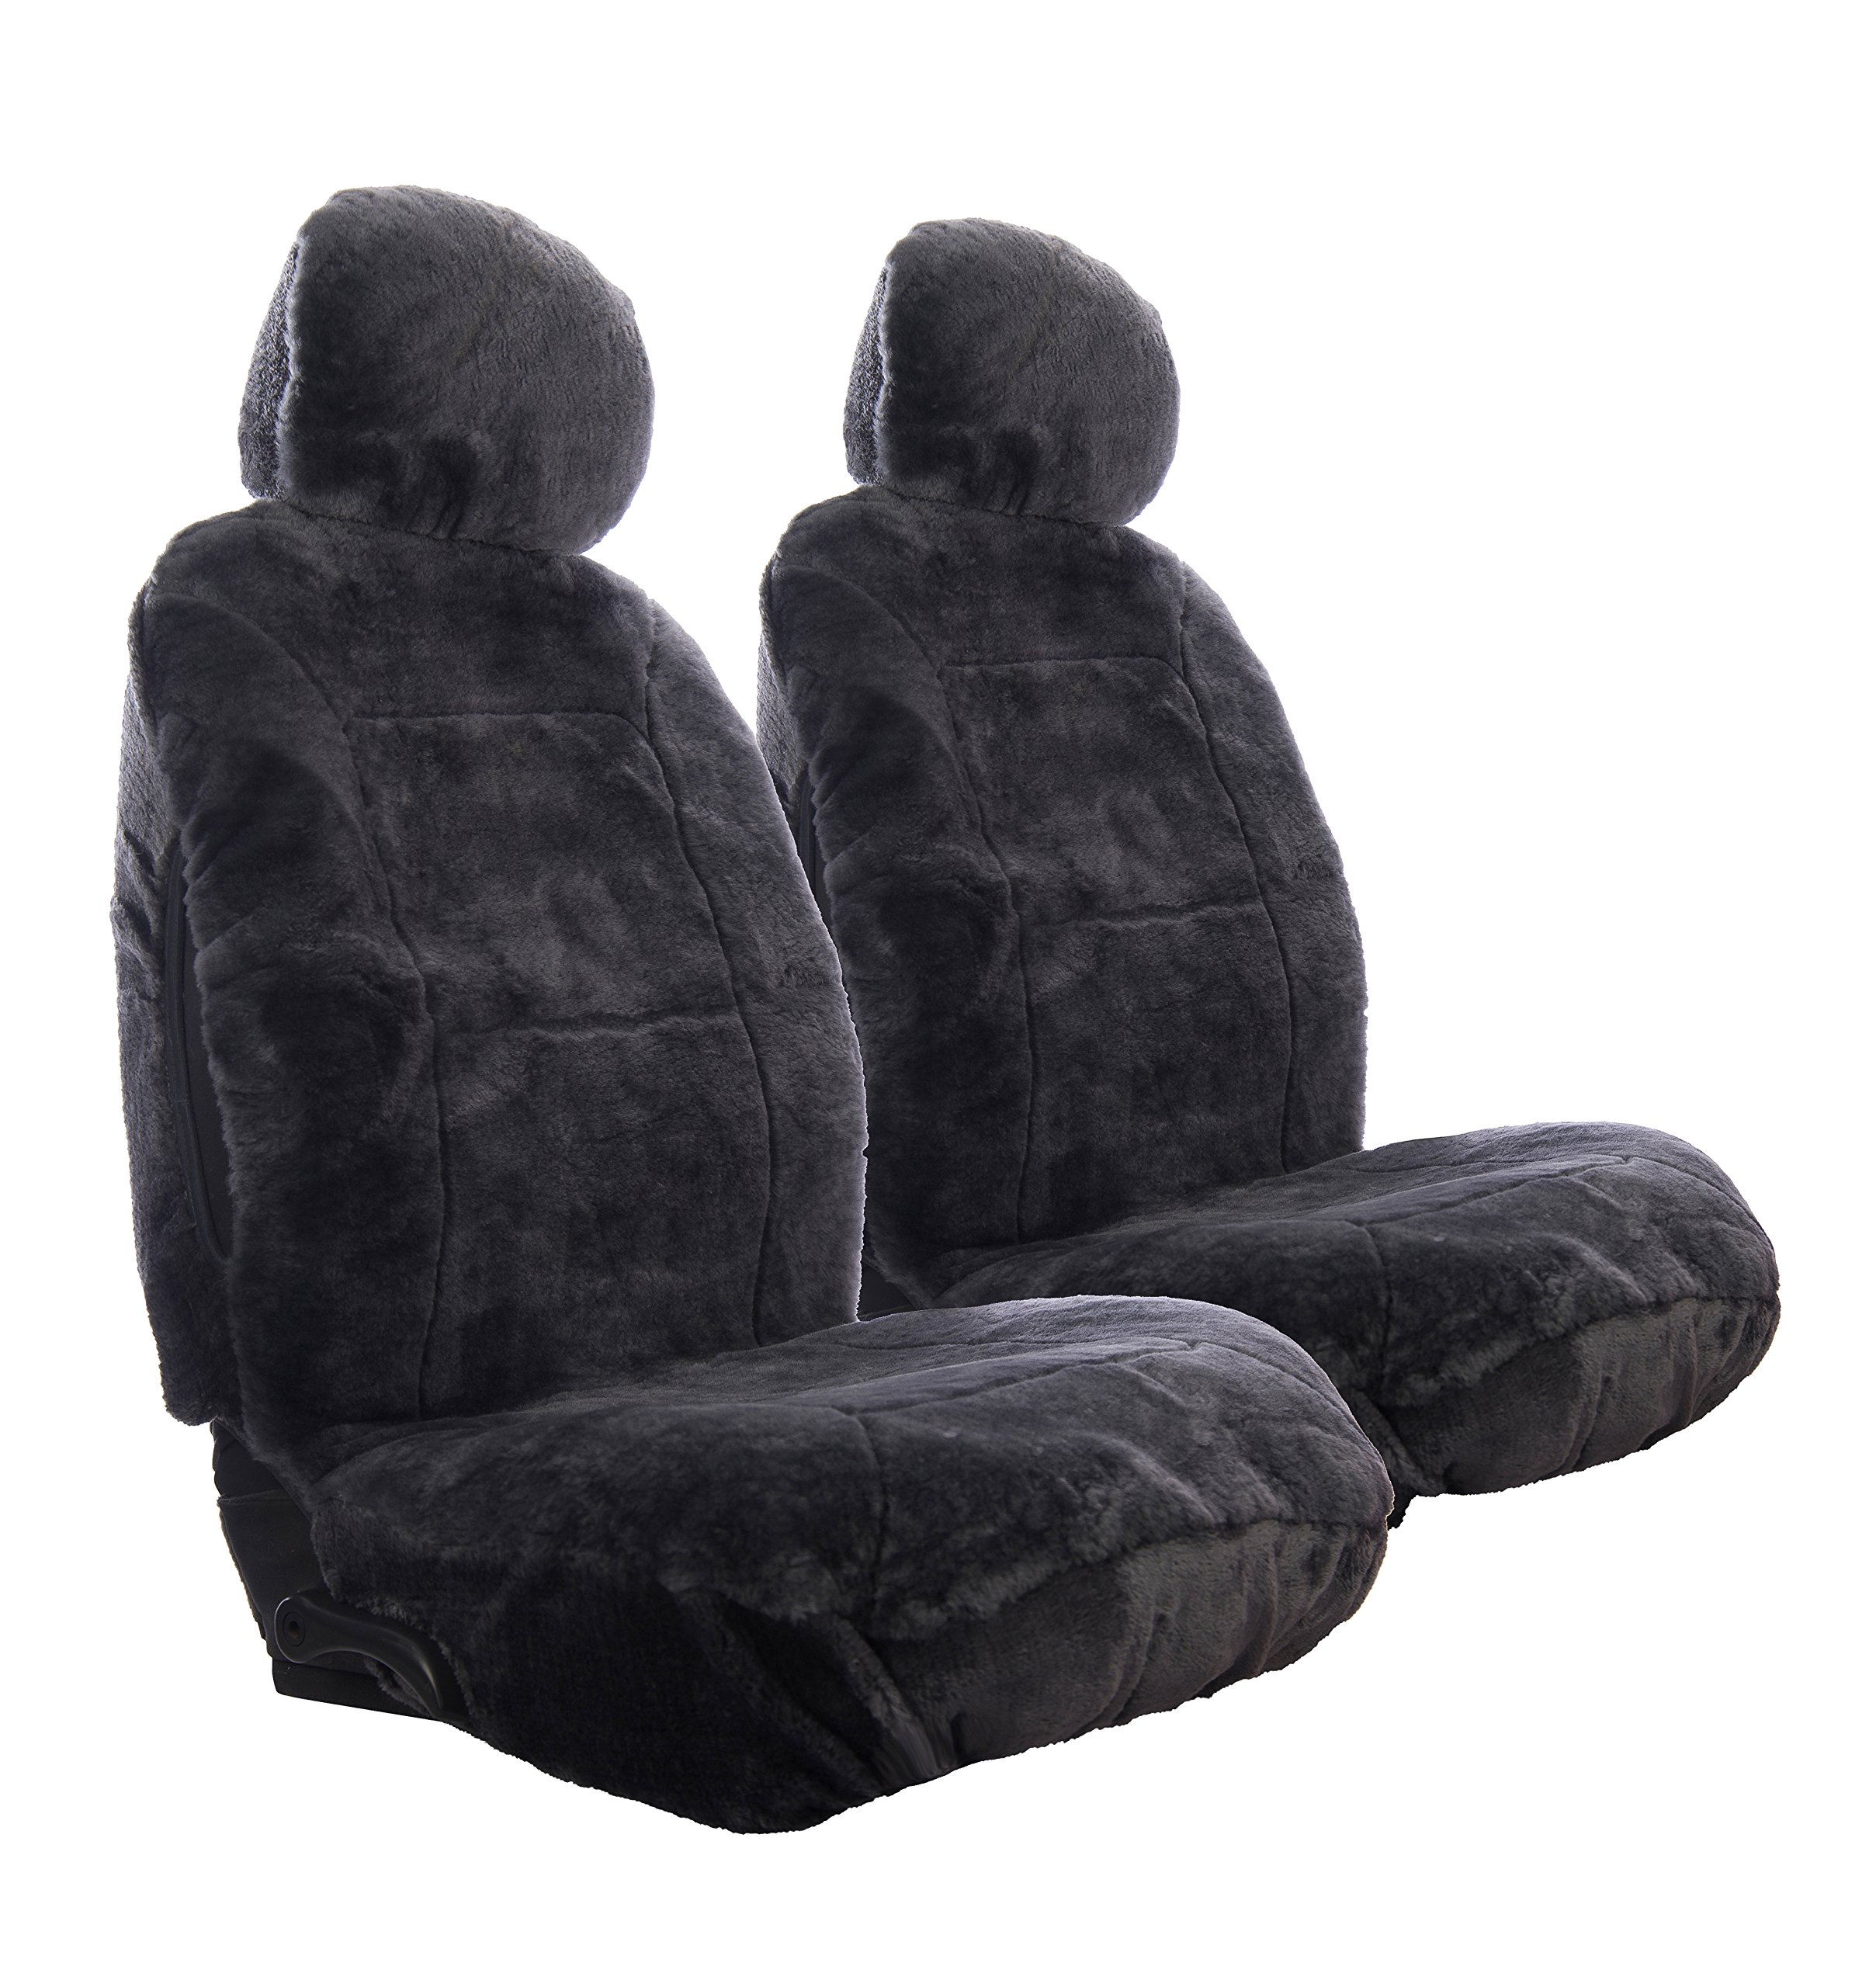 Sheepskin Car Seat Covers, Premium Set of 2, Genuine Australian Sheepskin Front, Universal Size, Back Storage Pocket, Stylish Design, Gray Color